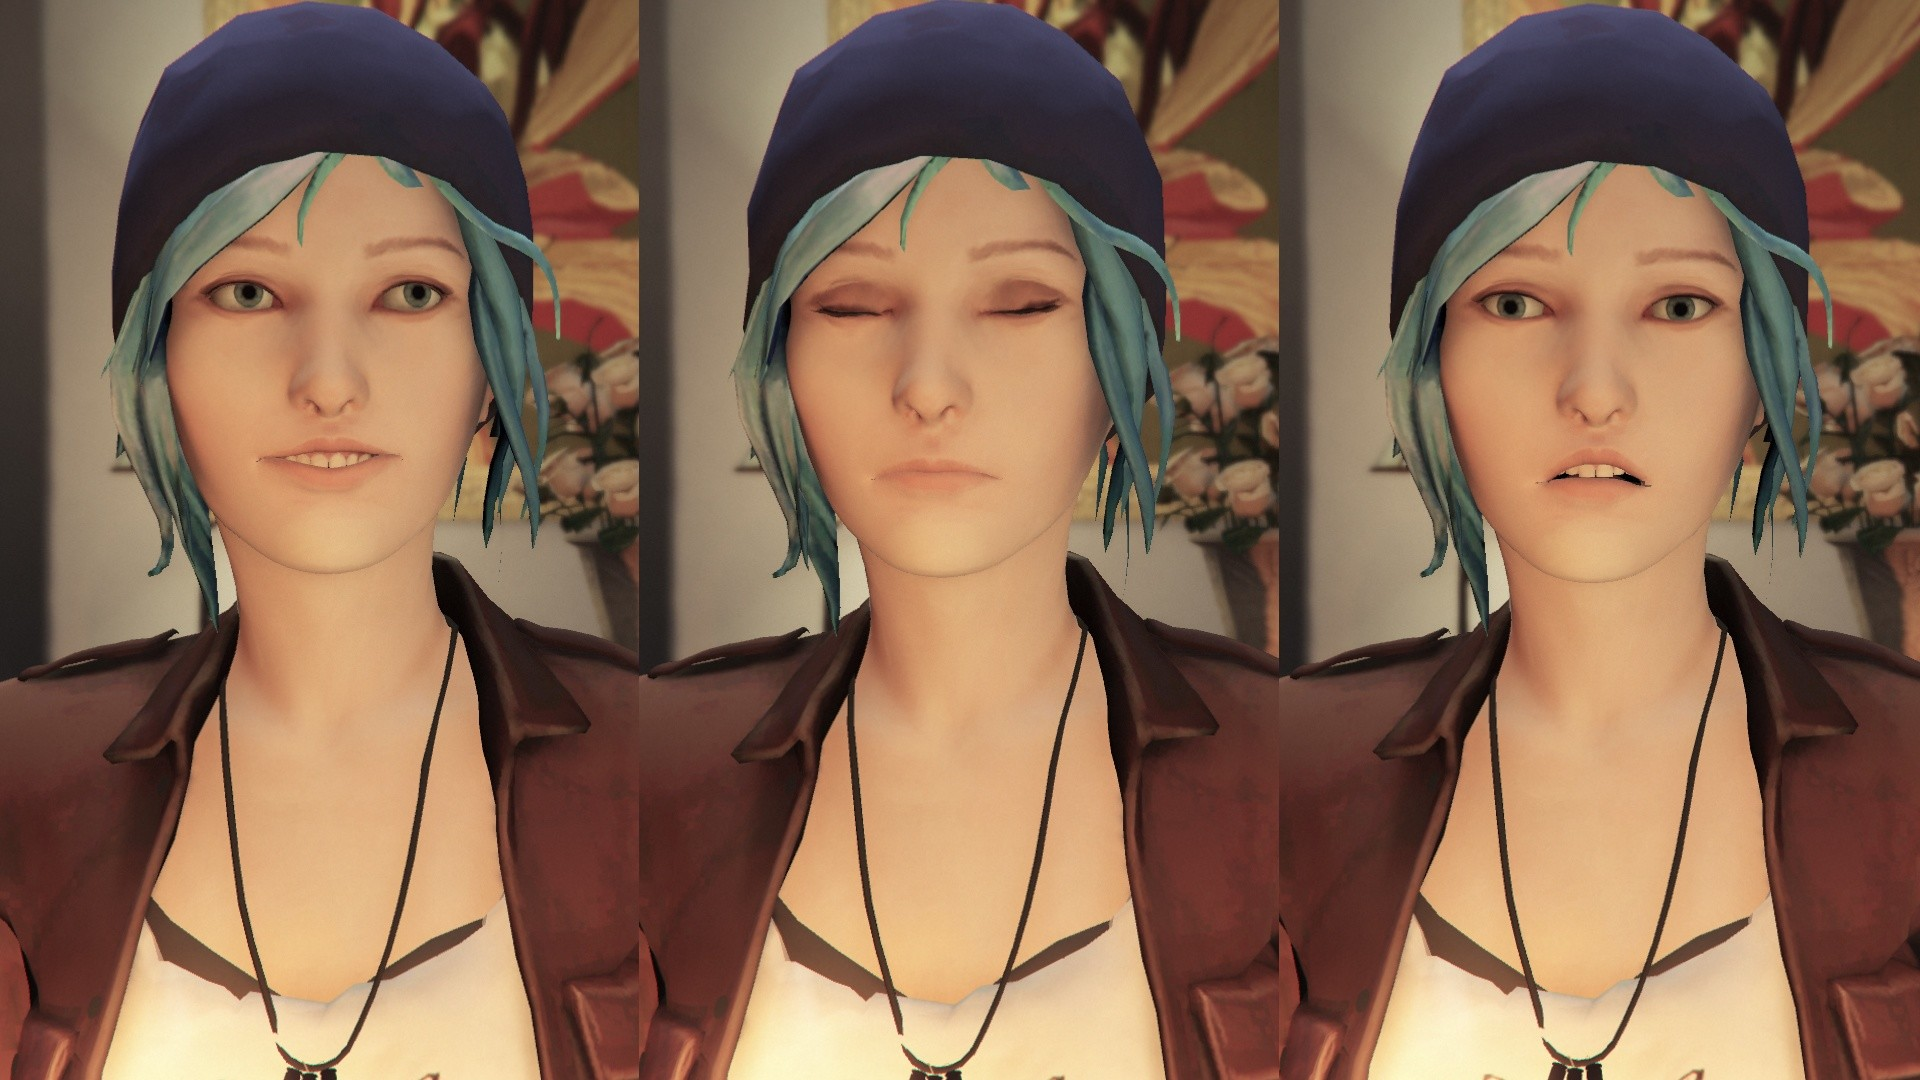 Res: 1920x1080, 7a9398 emos. 7a9398 chloe outfits